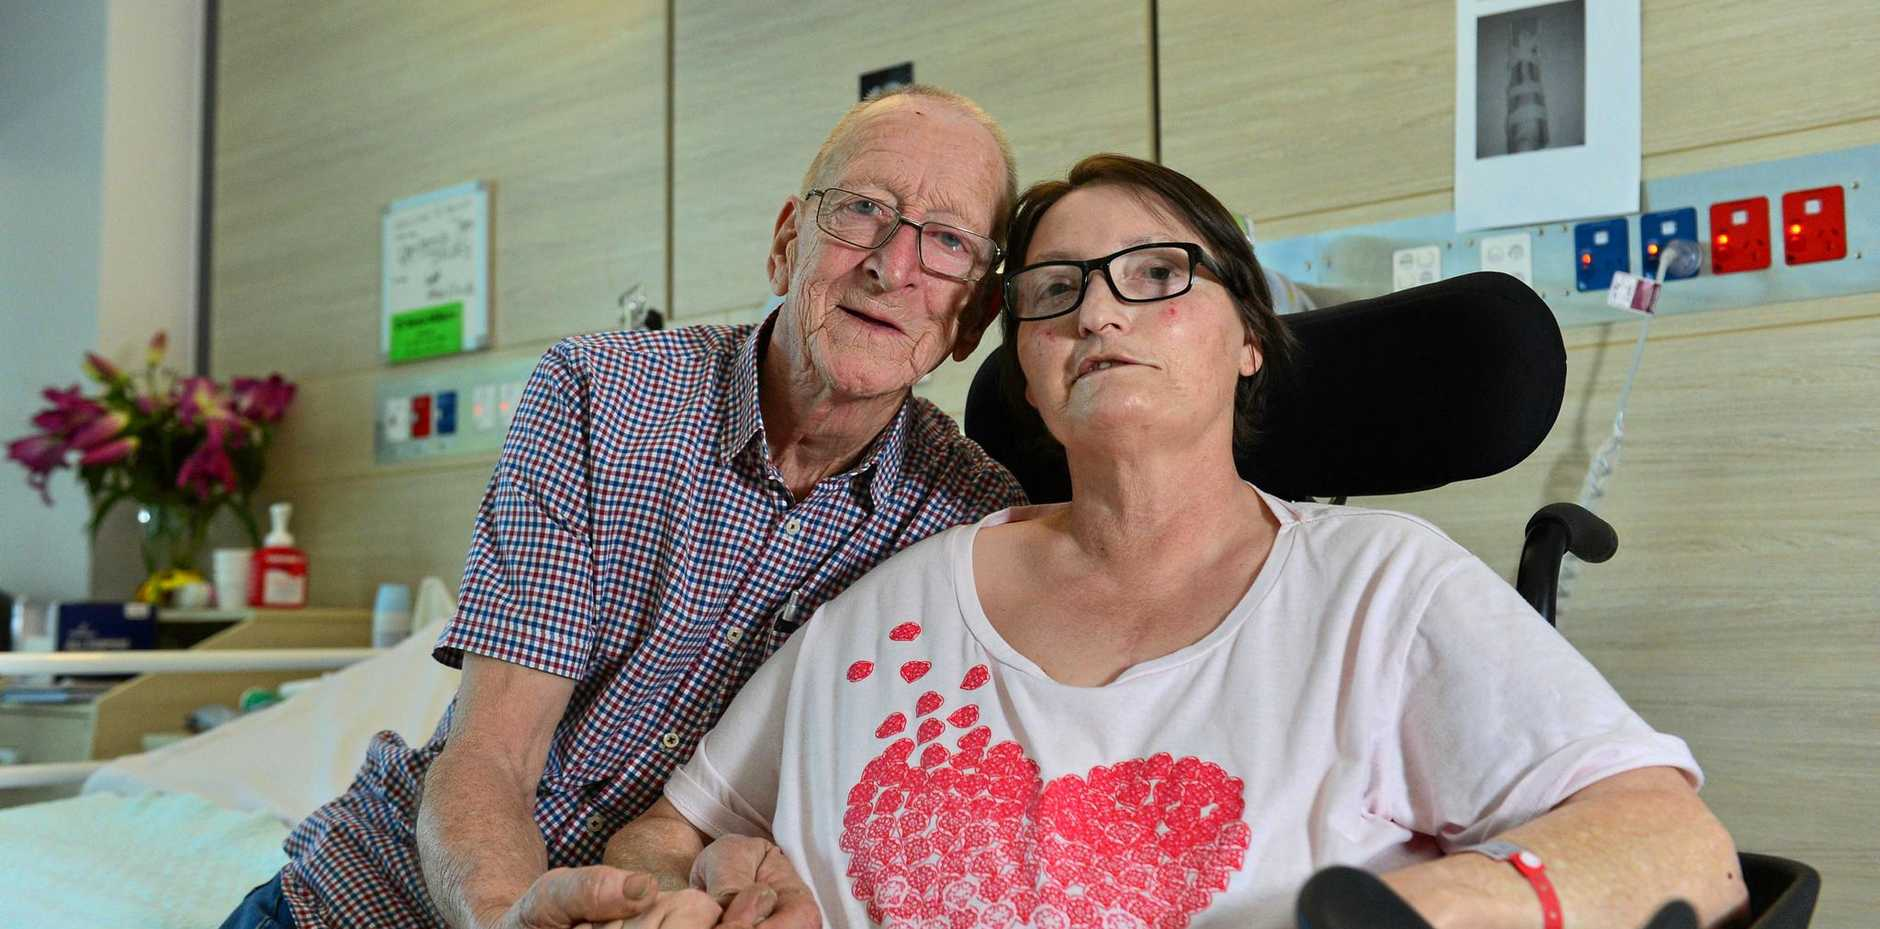 Antonia Drury has been in hospital for 4 months after a game of cricket which left her with a broken hip, then 3 heart attacks and a stroke. Her husband Vic has been by her side since.